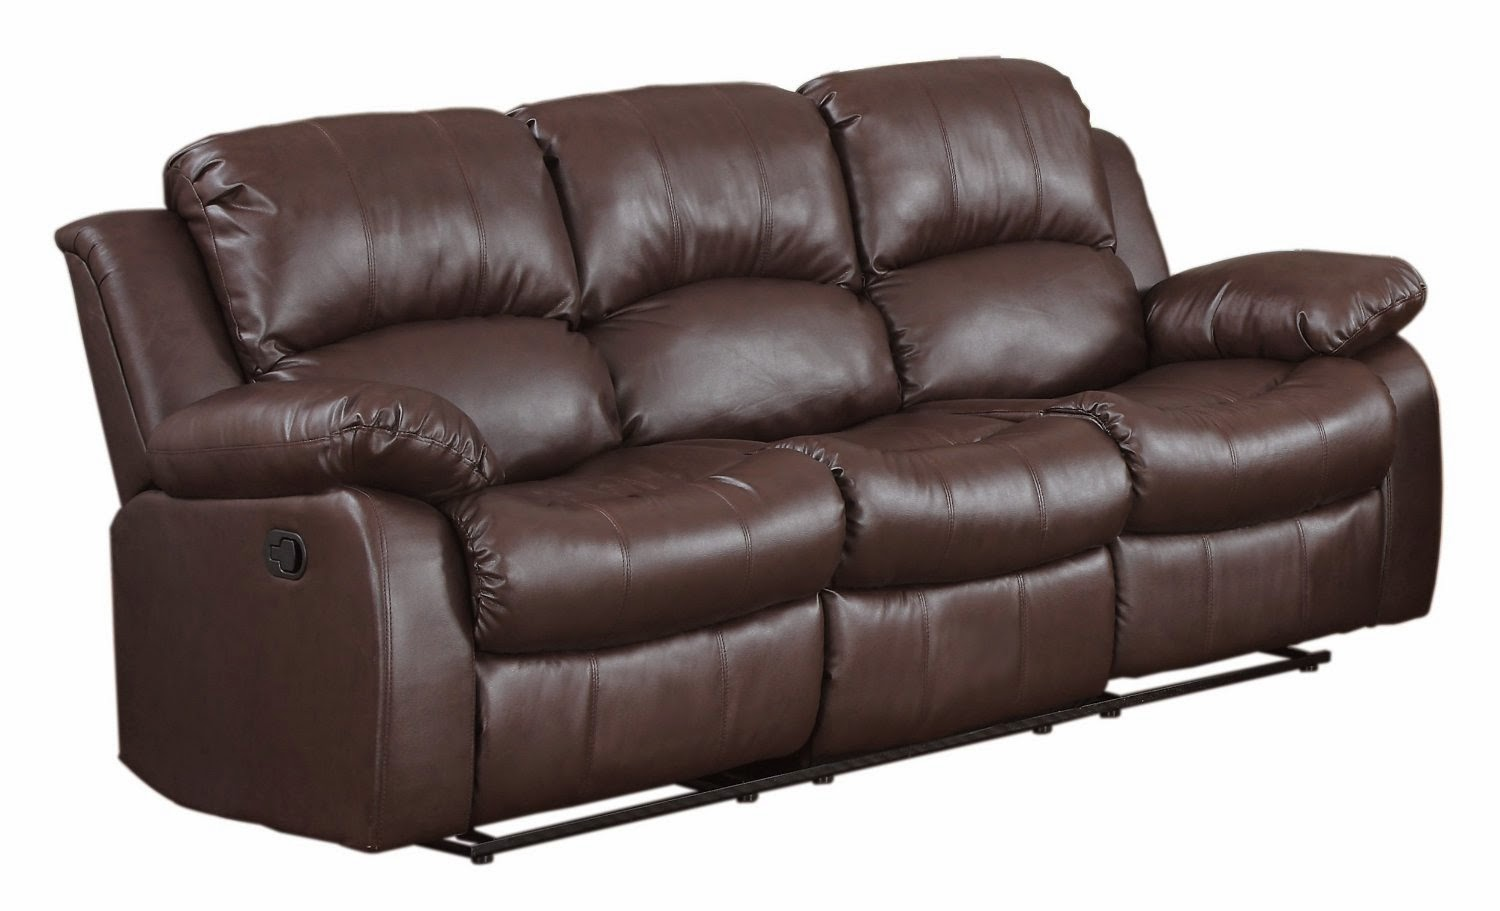 Cheap recliner sofas for sale sectional reclining sofas for Leather reclining sofa